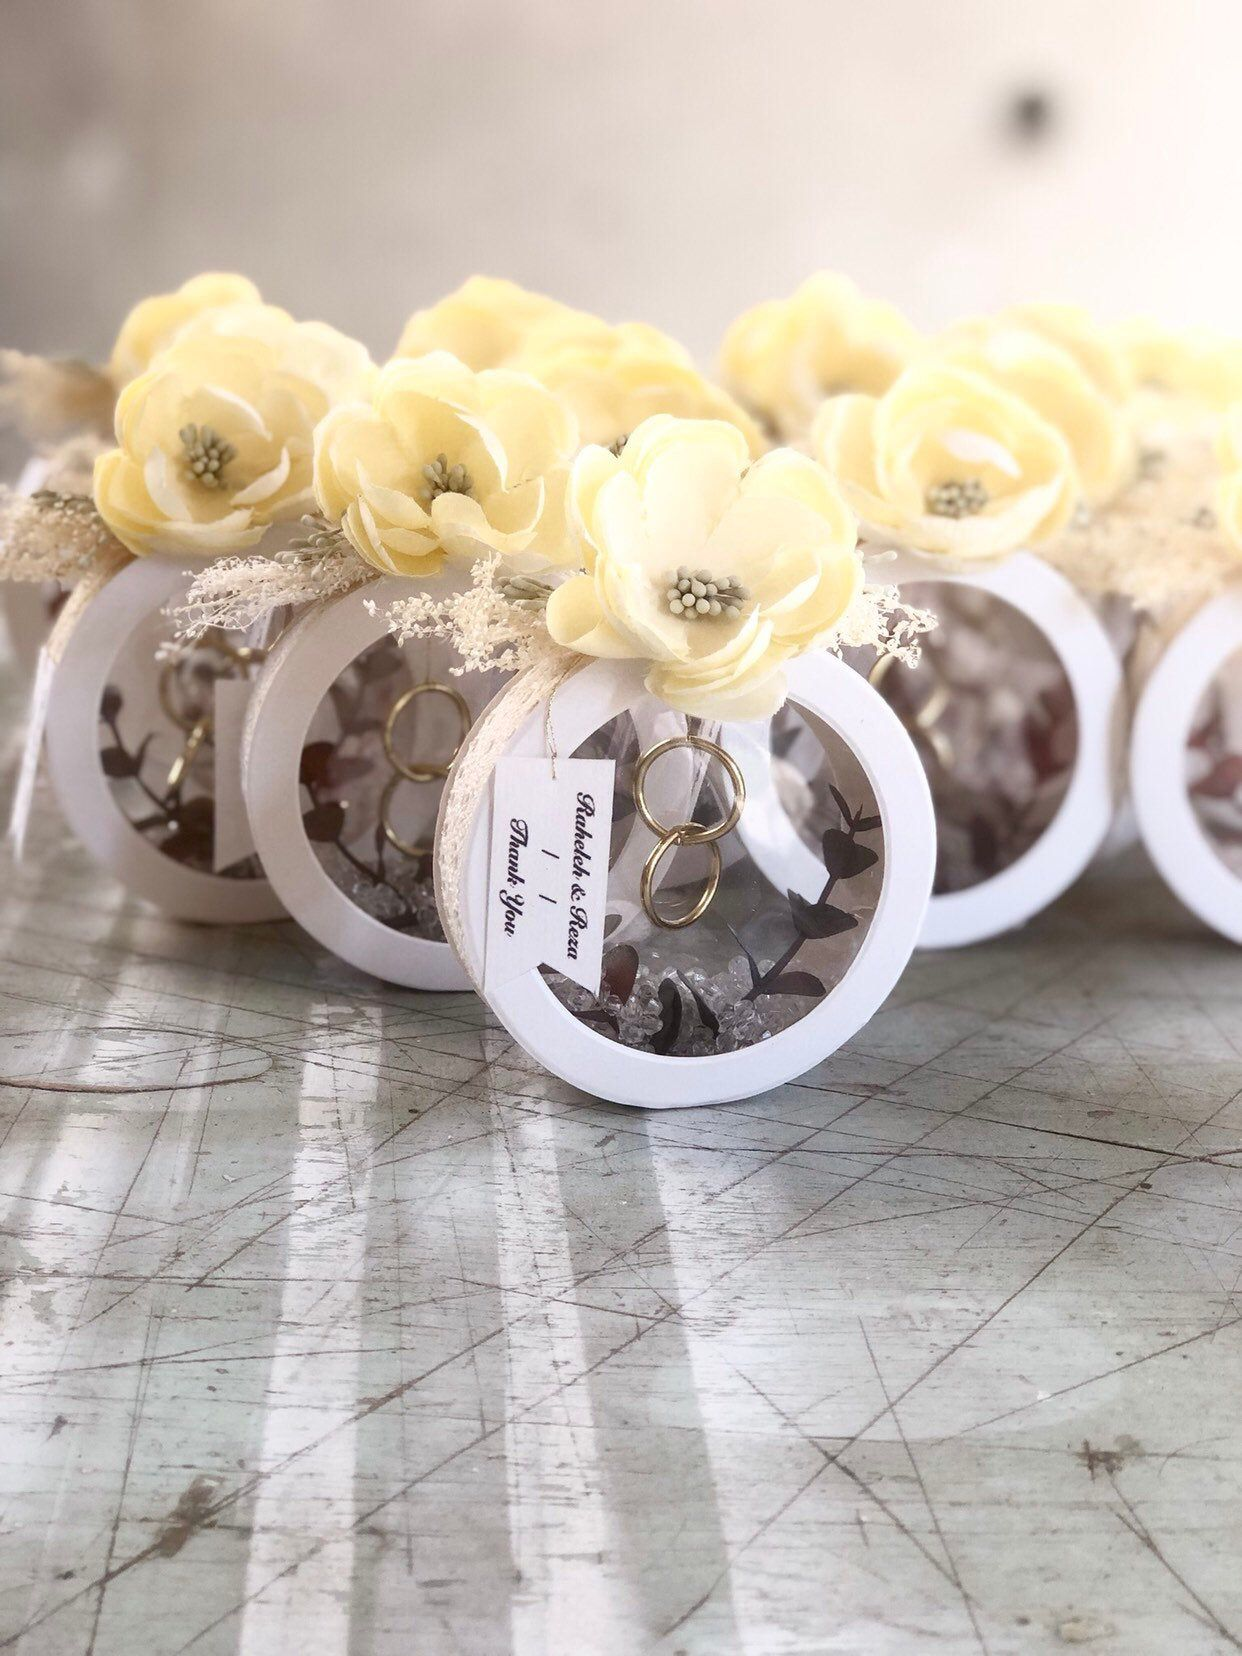 10 Wedding Favors For Guests Wedding Favors Party Supplies Party Favors Favors Favors Boxes Handmade Favors Rustic Wedding Baptism